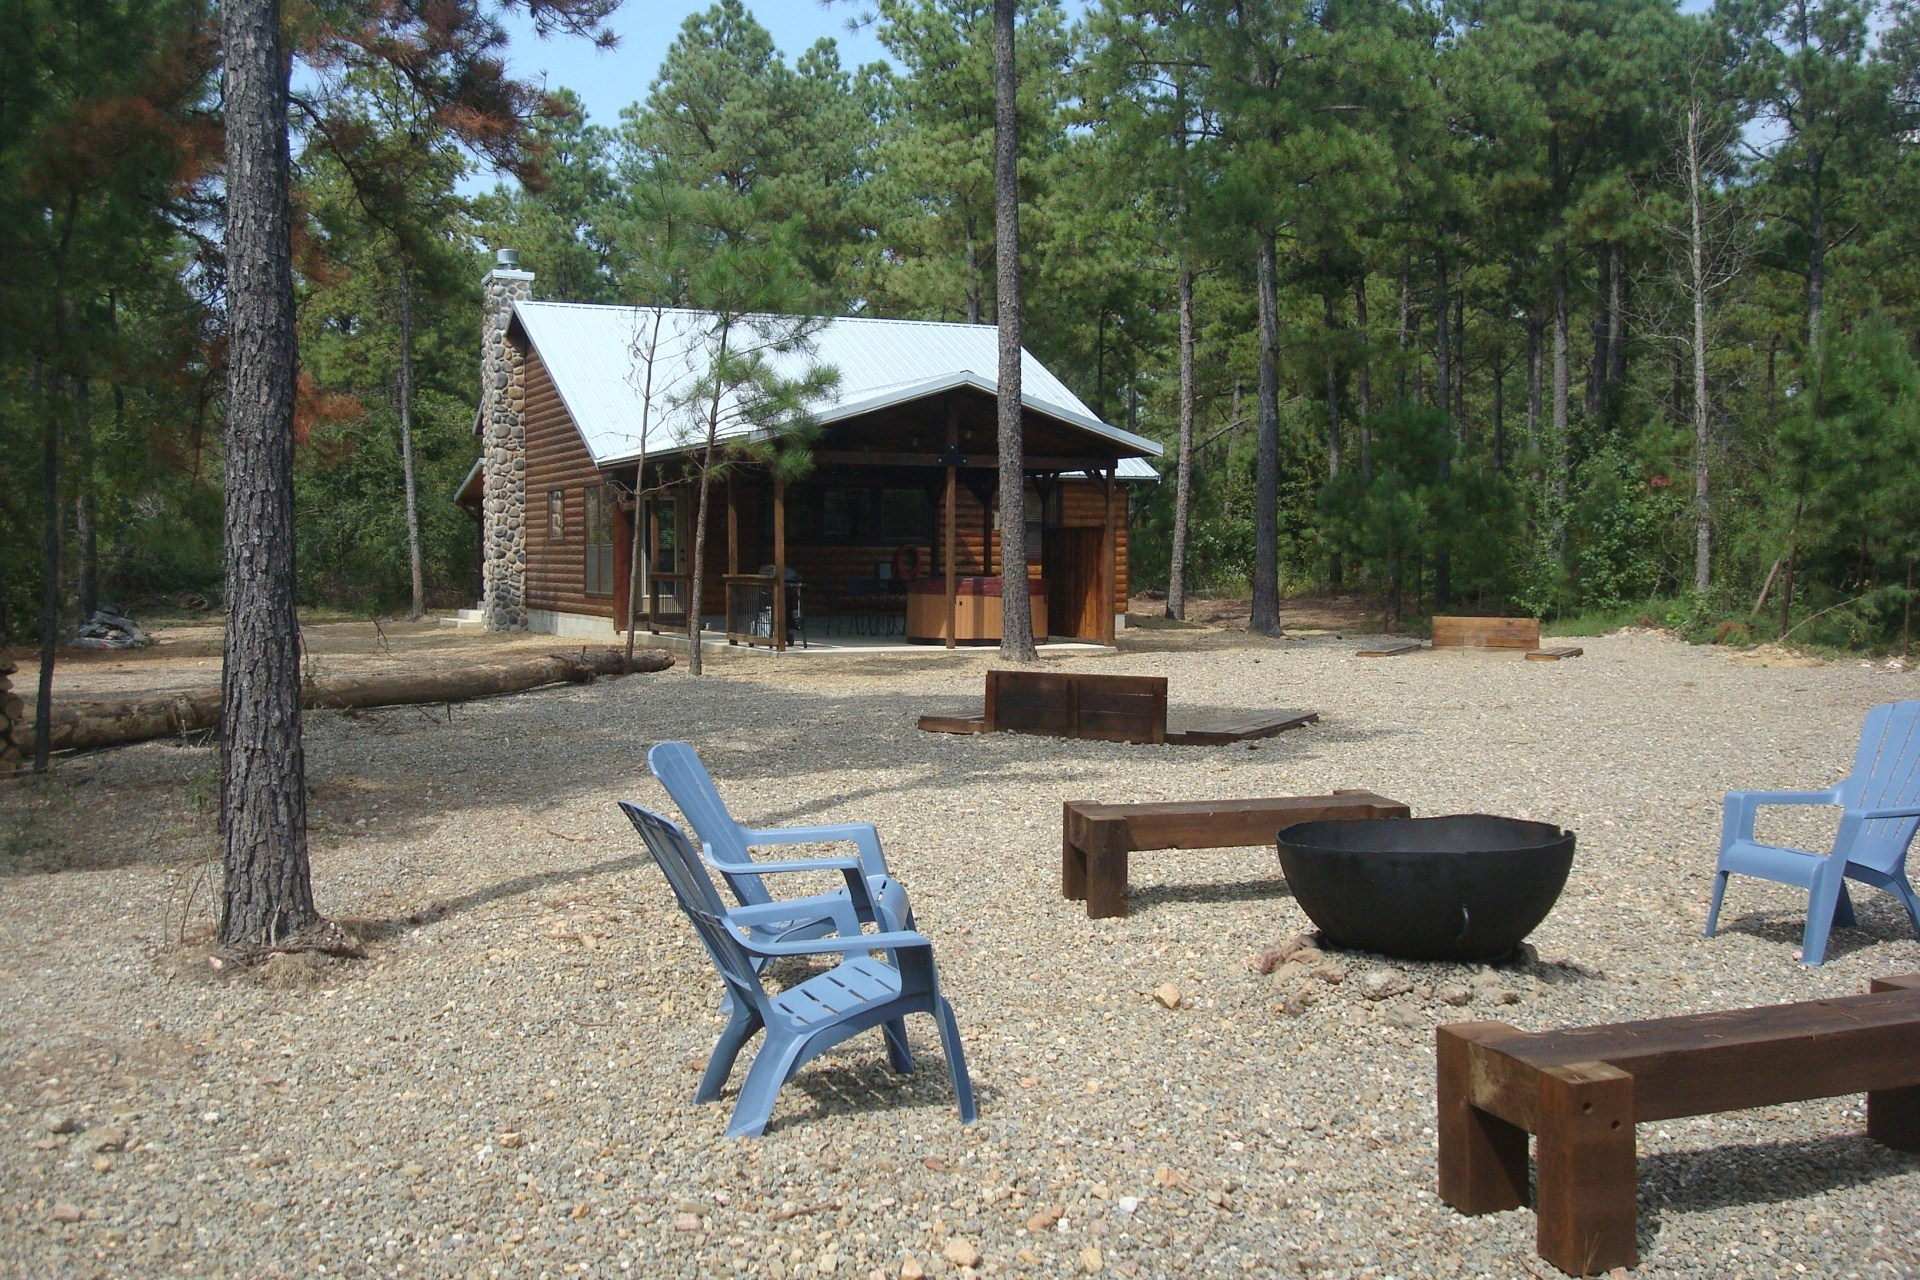 bend bow oklahoma breakfast best beavers archives rentals category broken travel luxury cabin img in cabins vacations